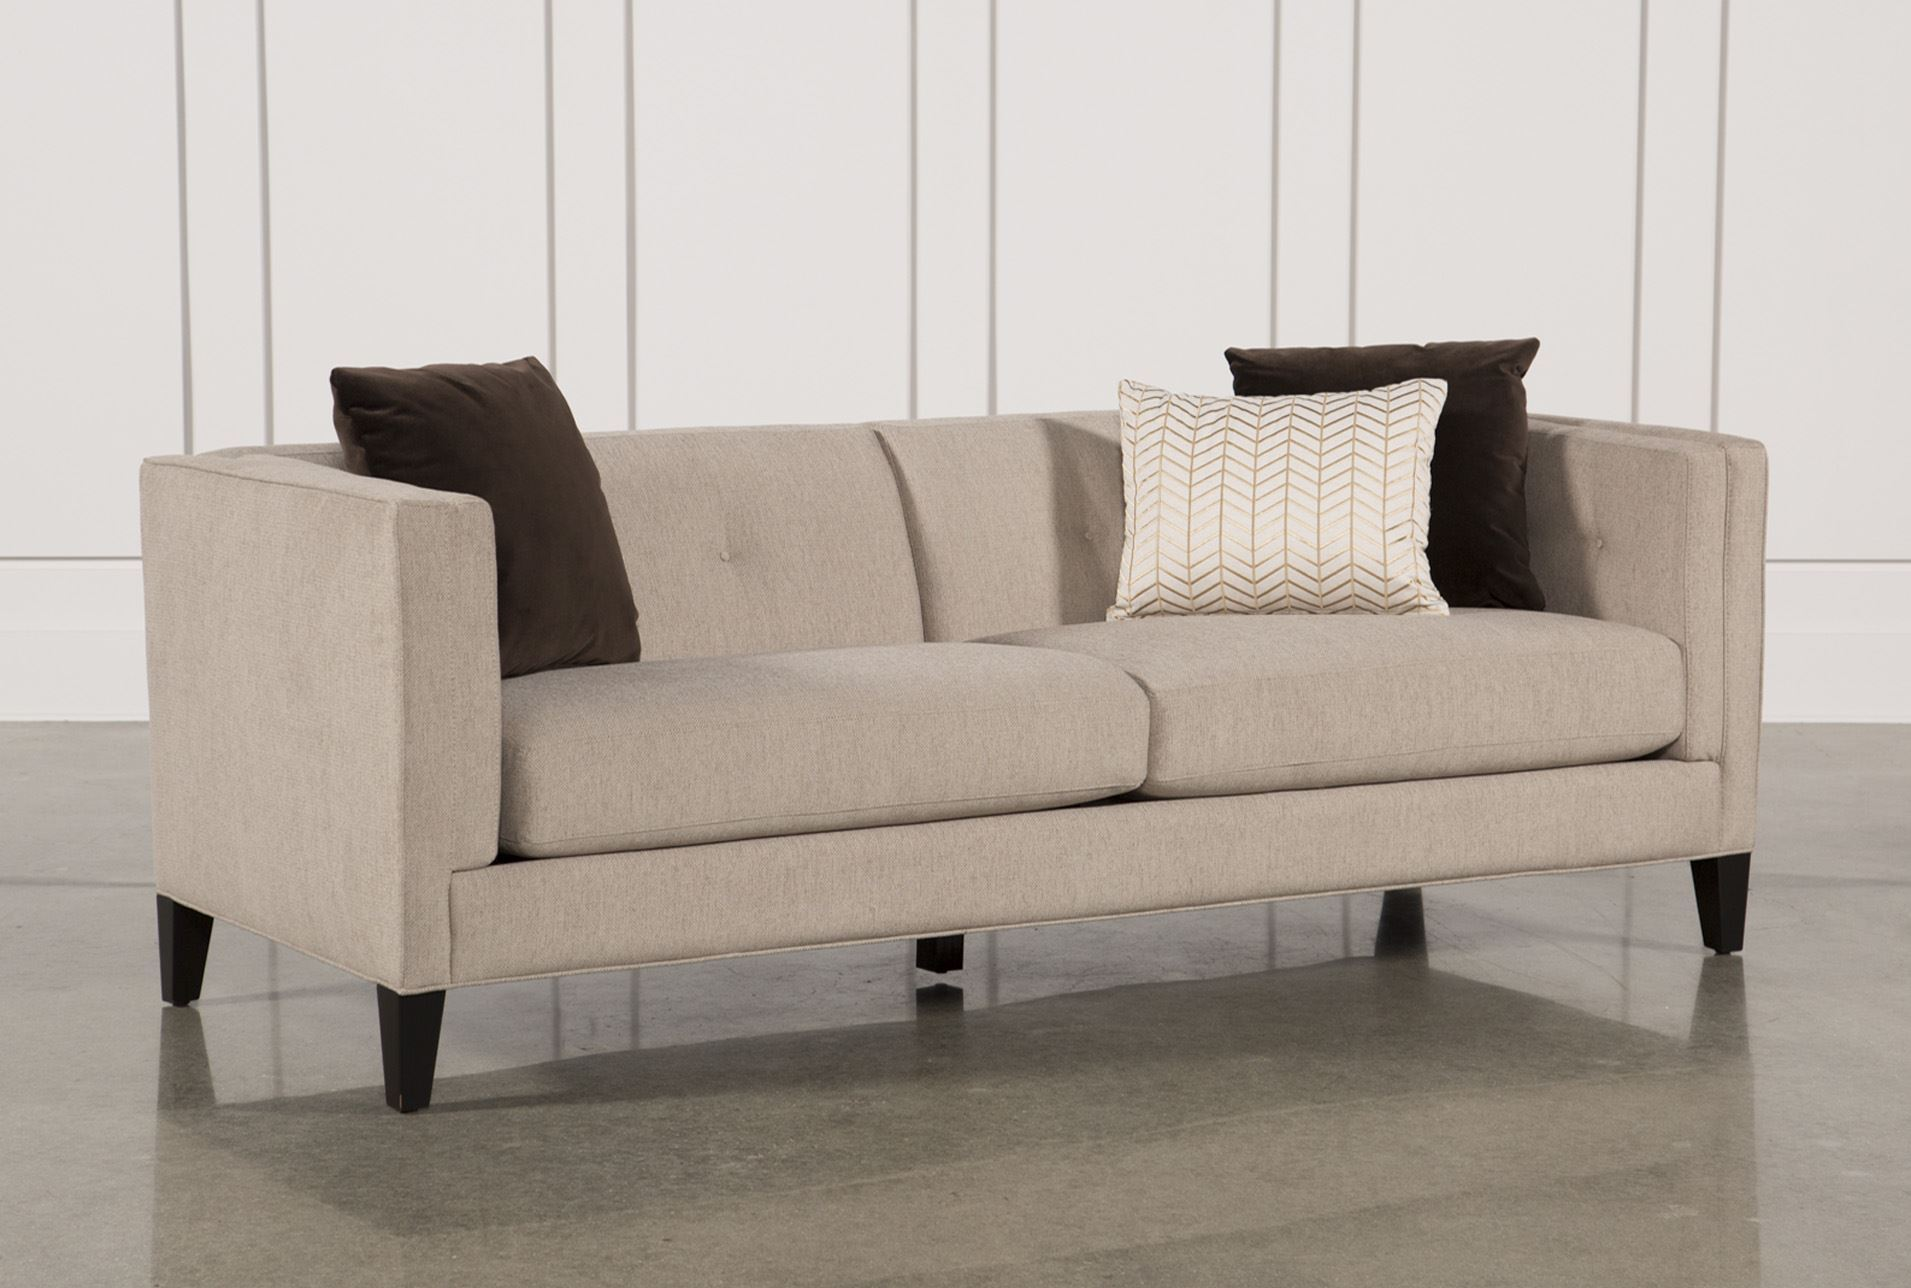 Awesome Slim Sofa Time Out 85 About Remodel Sofas And Couches Ideas With